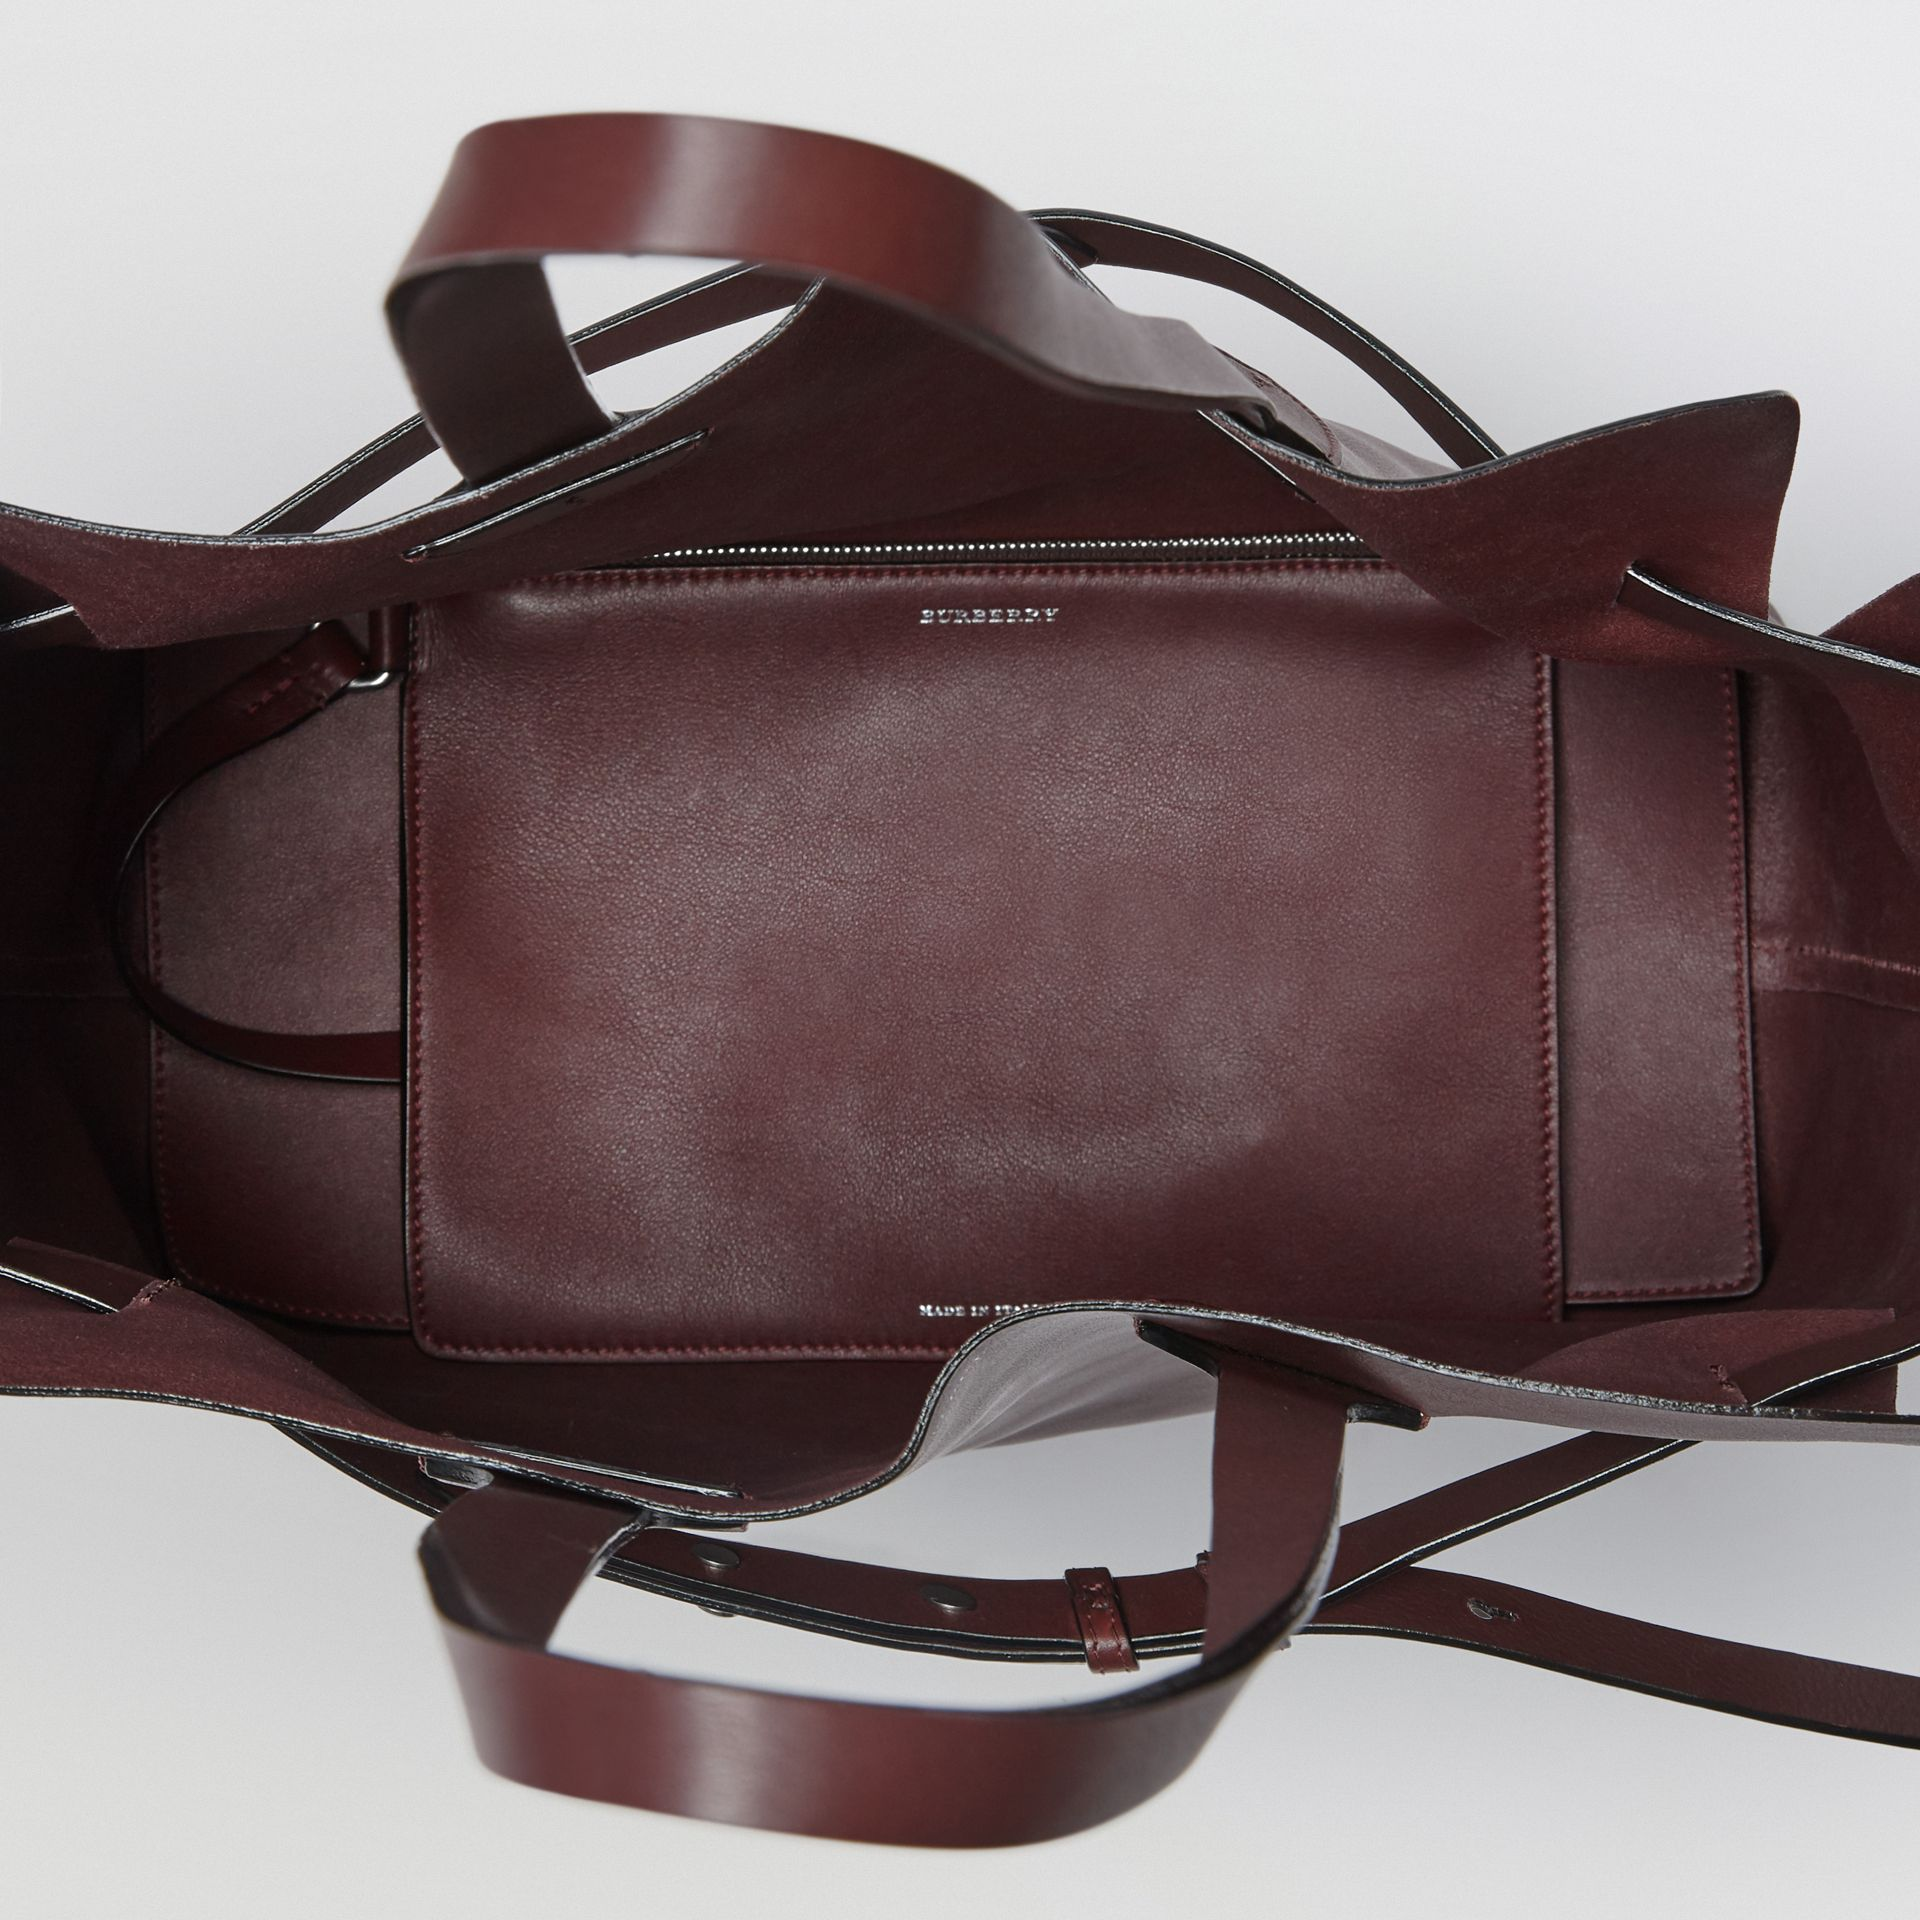 Sac The Belt moyen en cuir doux (Bordeaux Intense) - Femme | Burberry - photo de la galerie 3